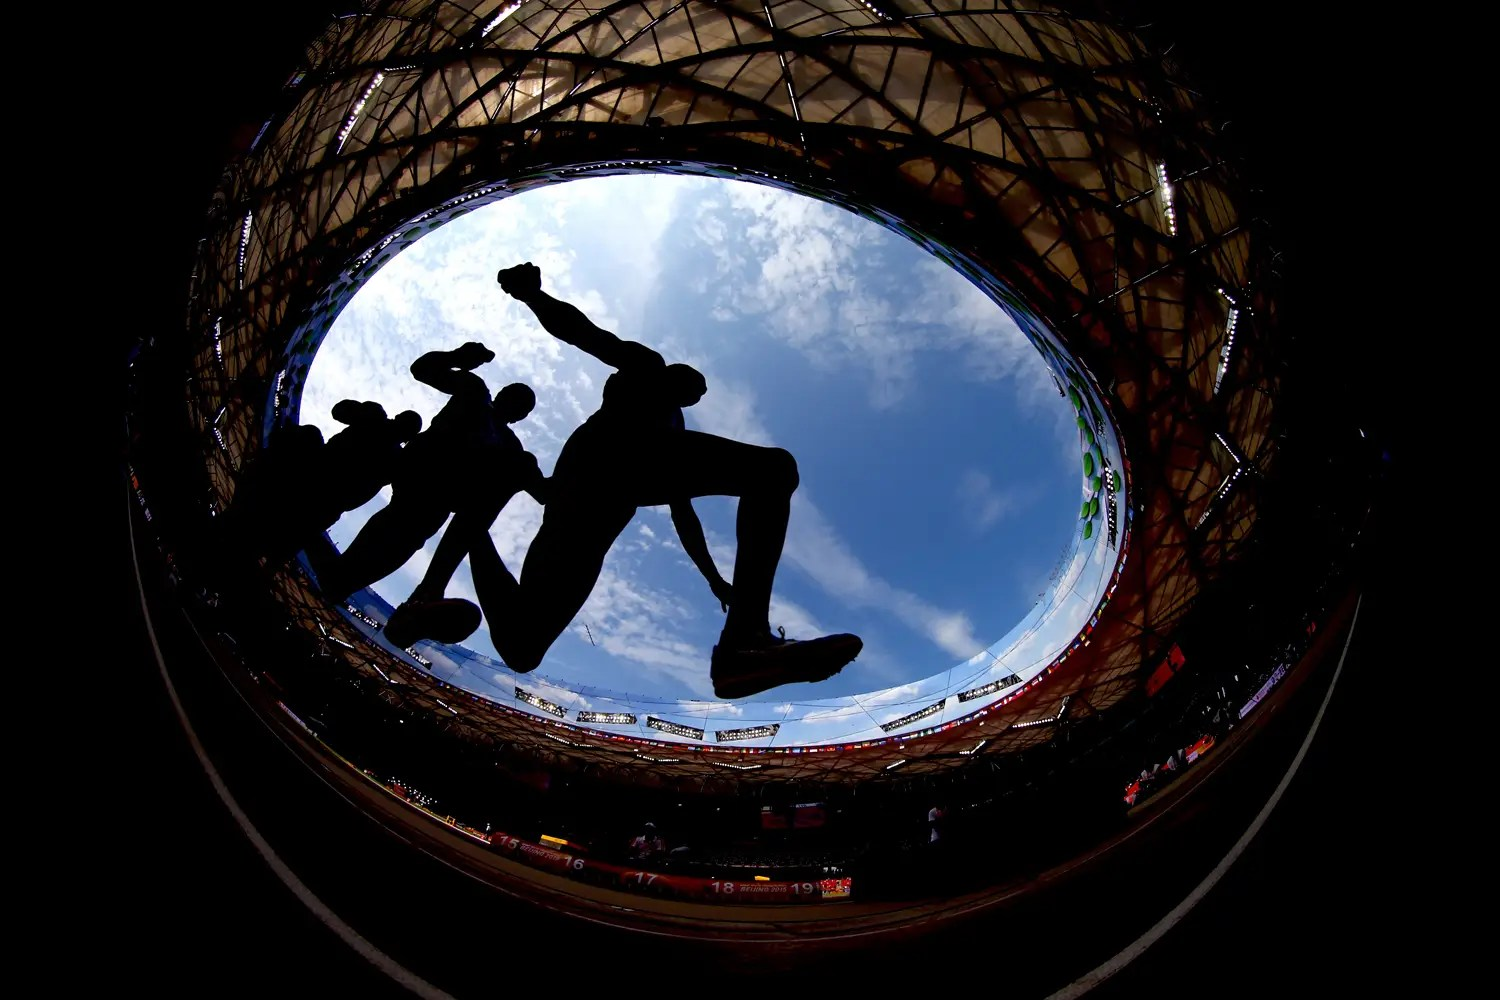 A triple-jumper takes off during qualification, with the Bird's Nest roof overhead.